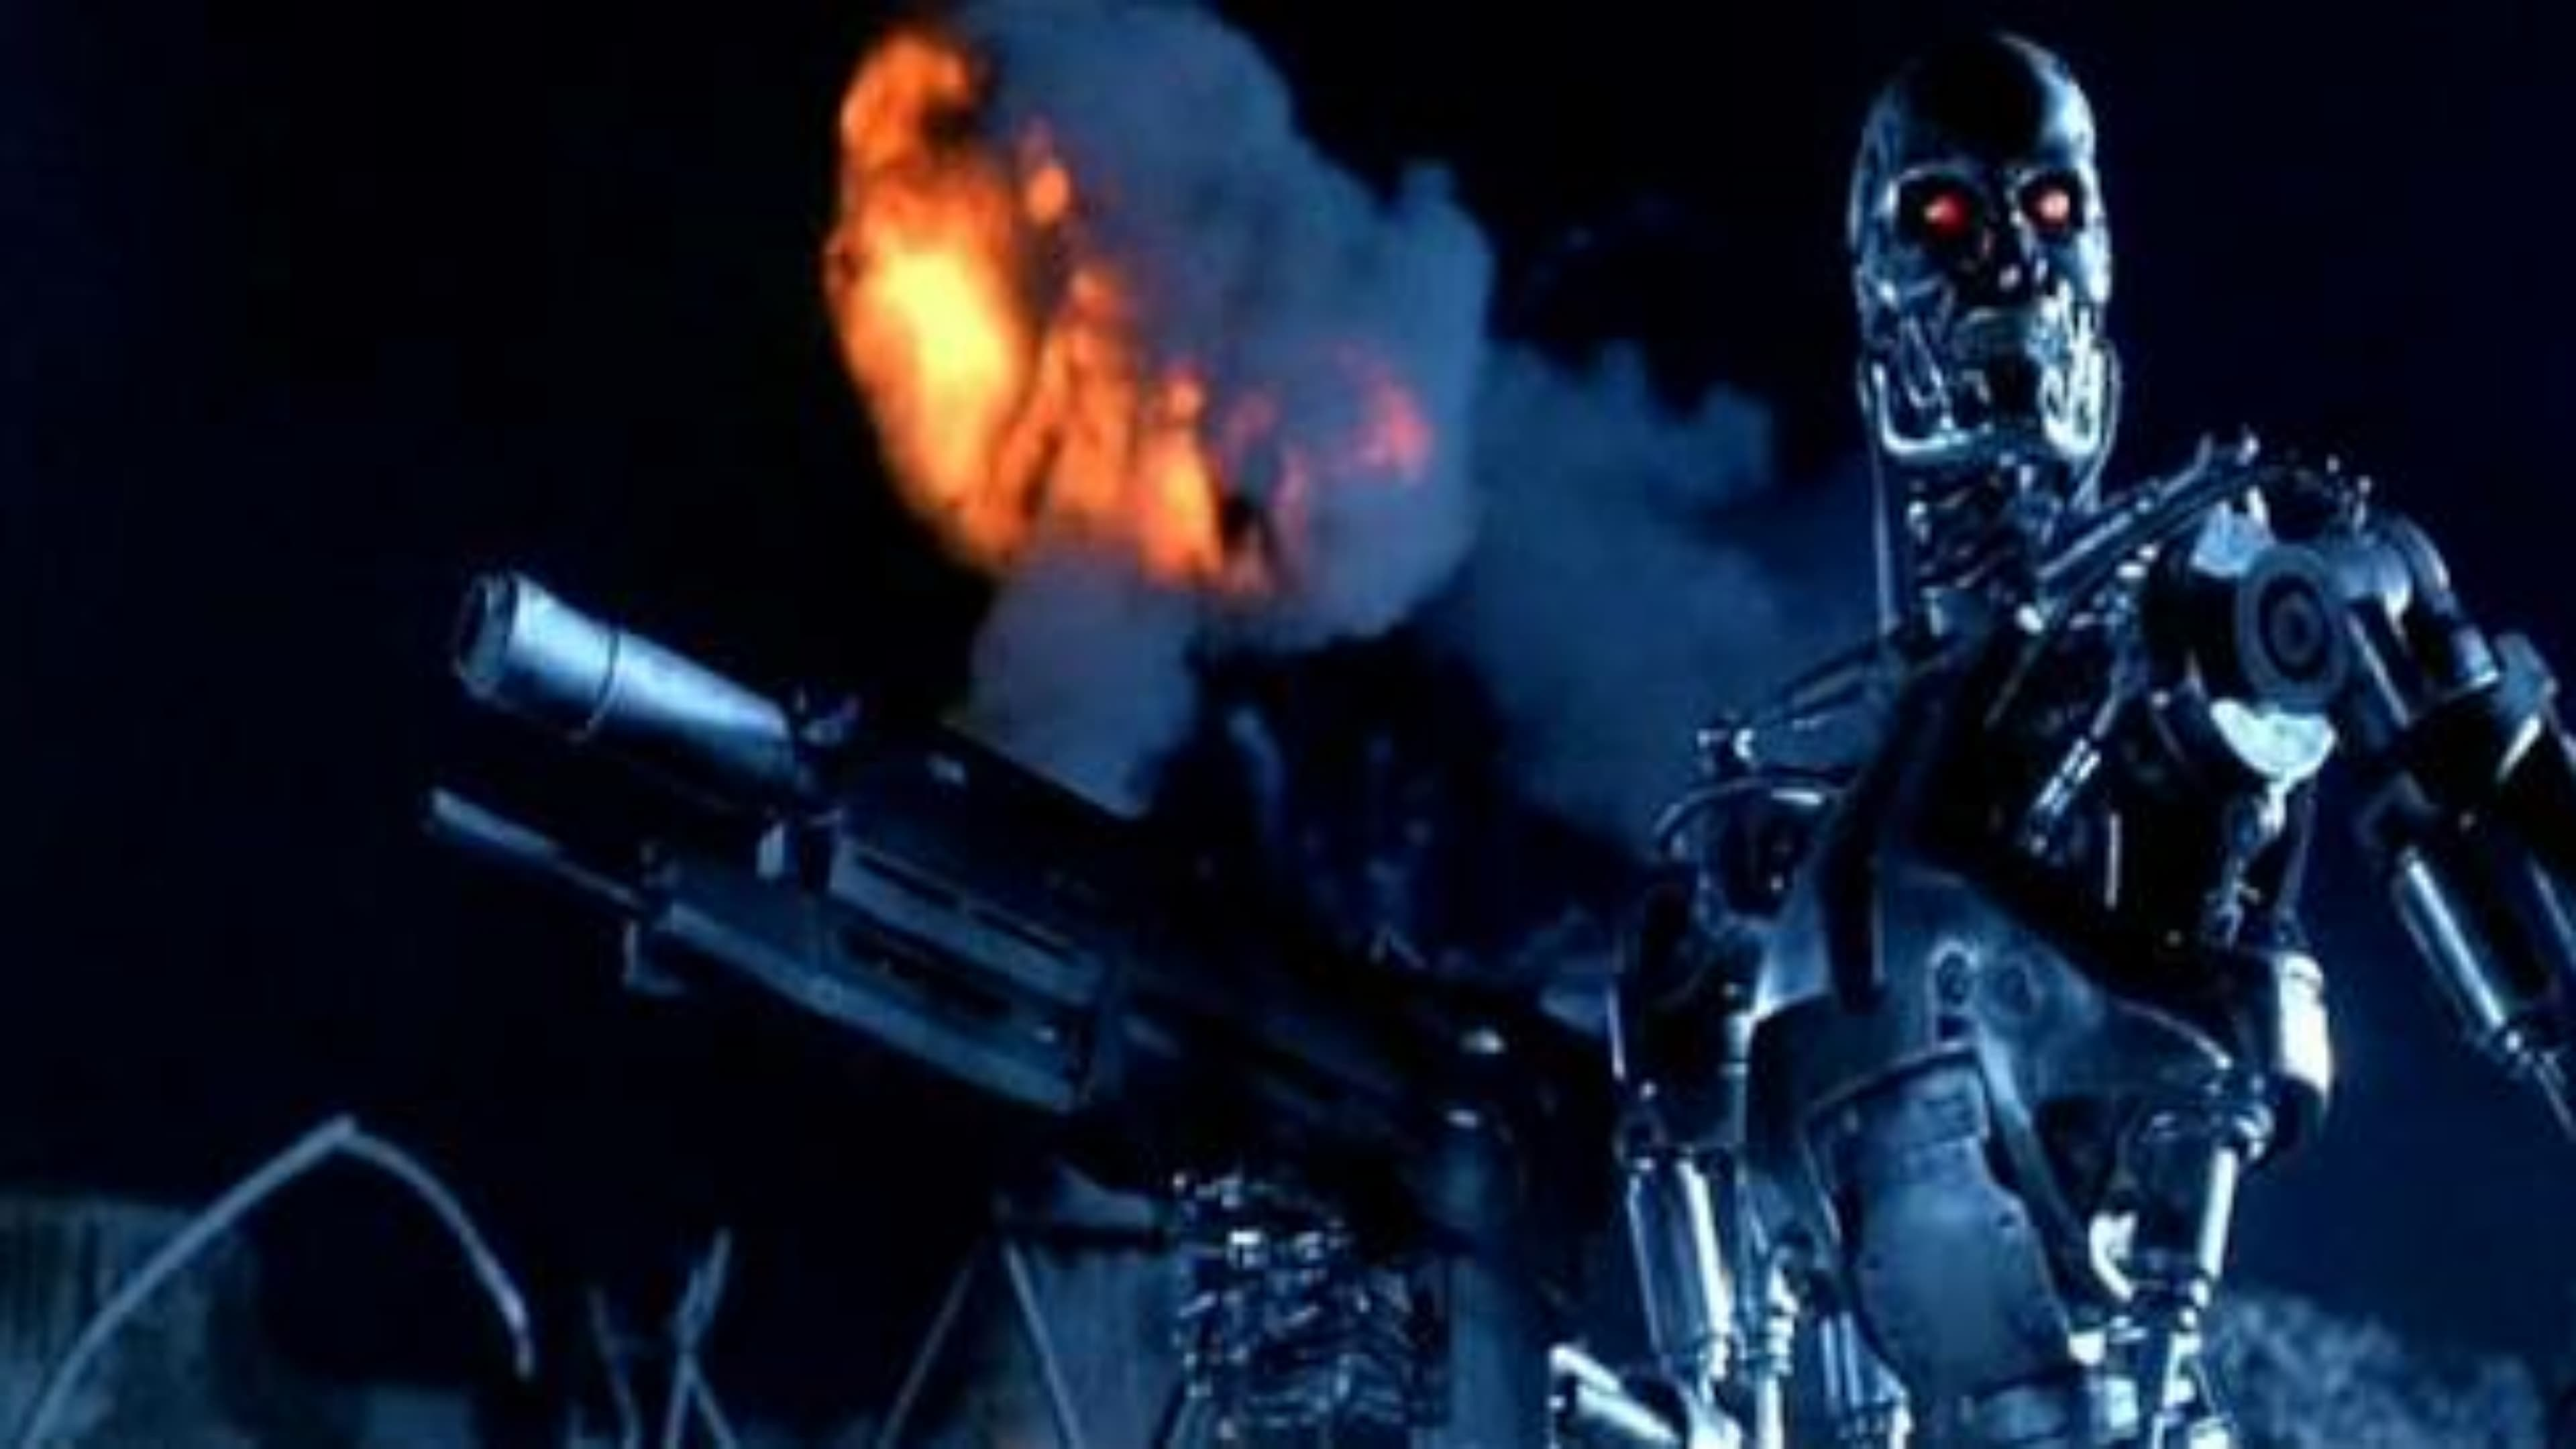 watch full terminator 2 judgment day 1991 movie without